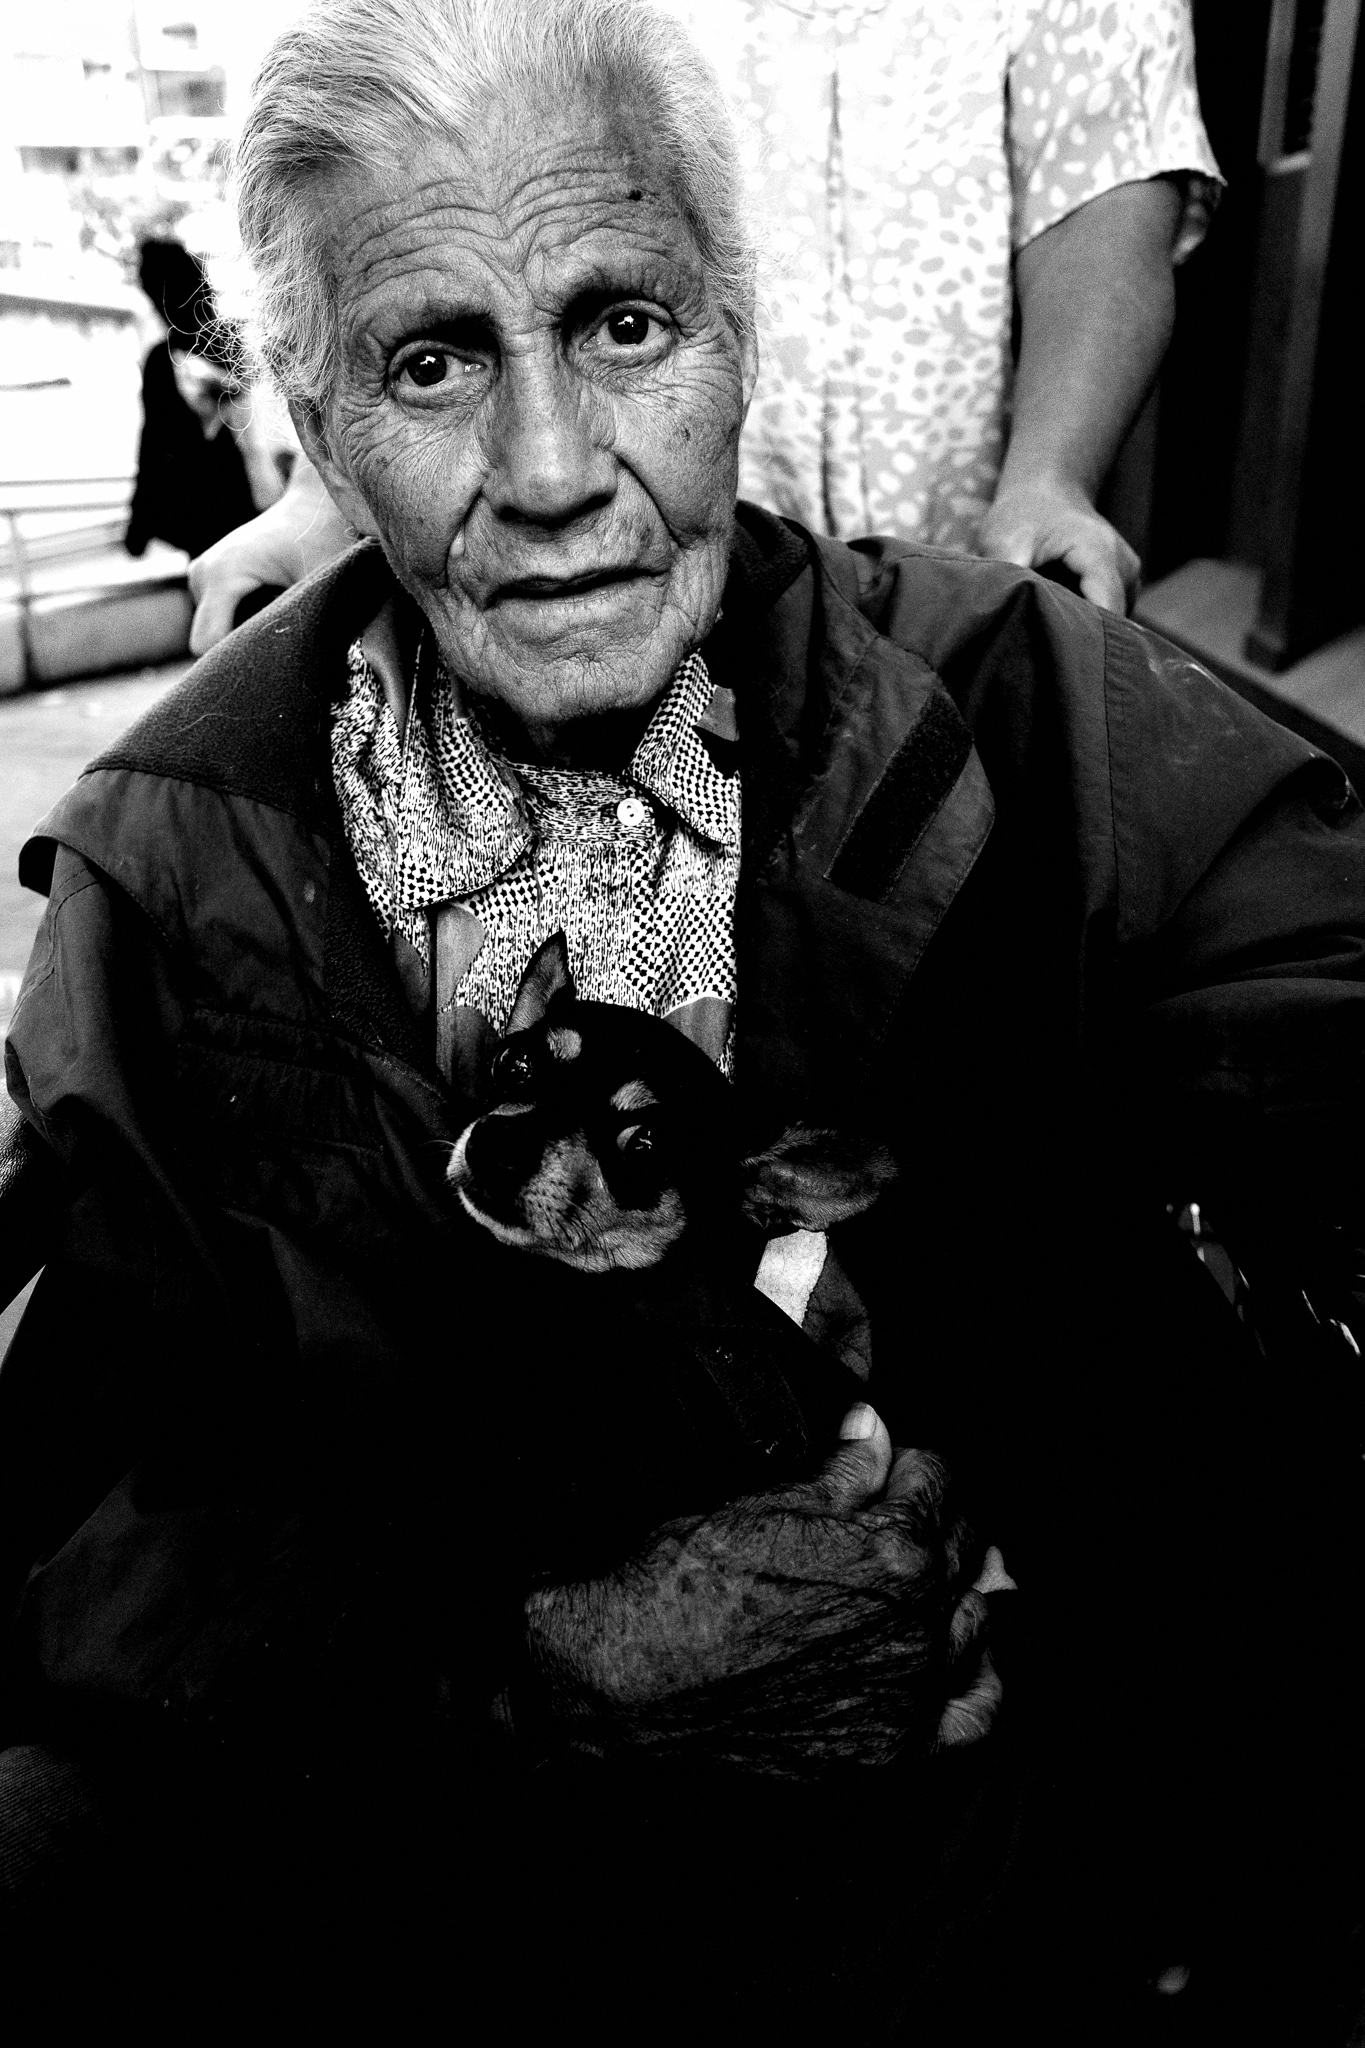 Mexico City, 2020 #streettogs pick